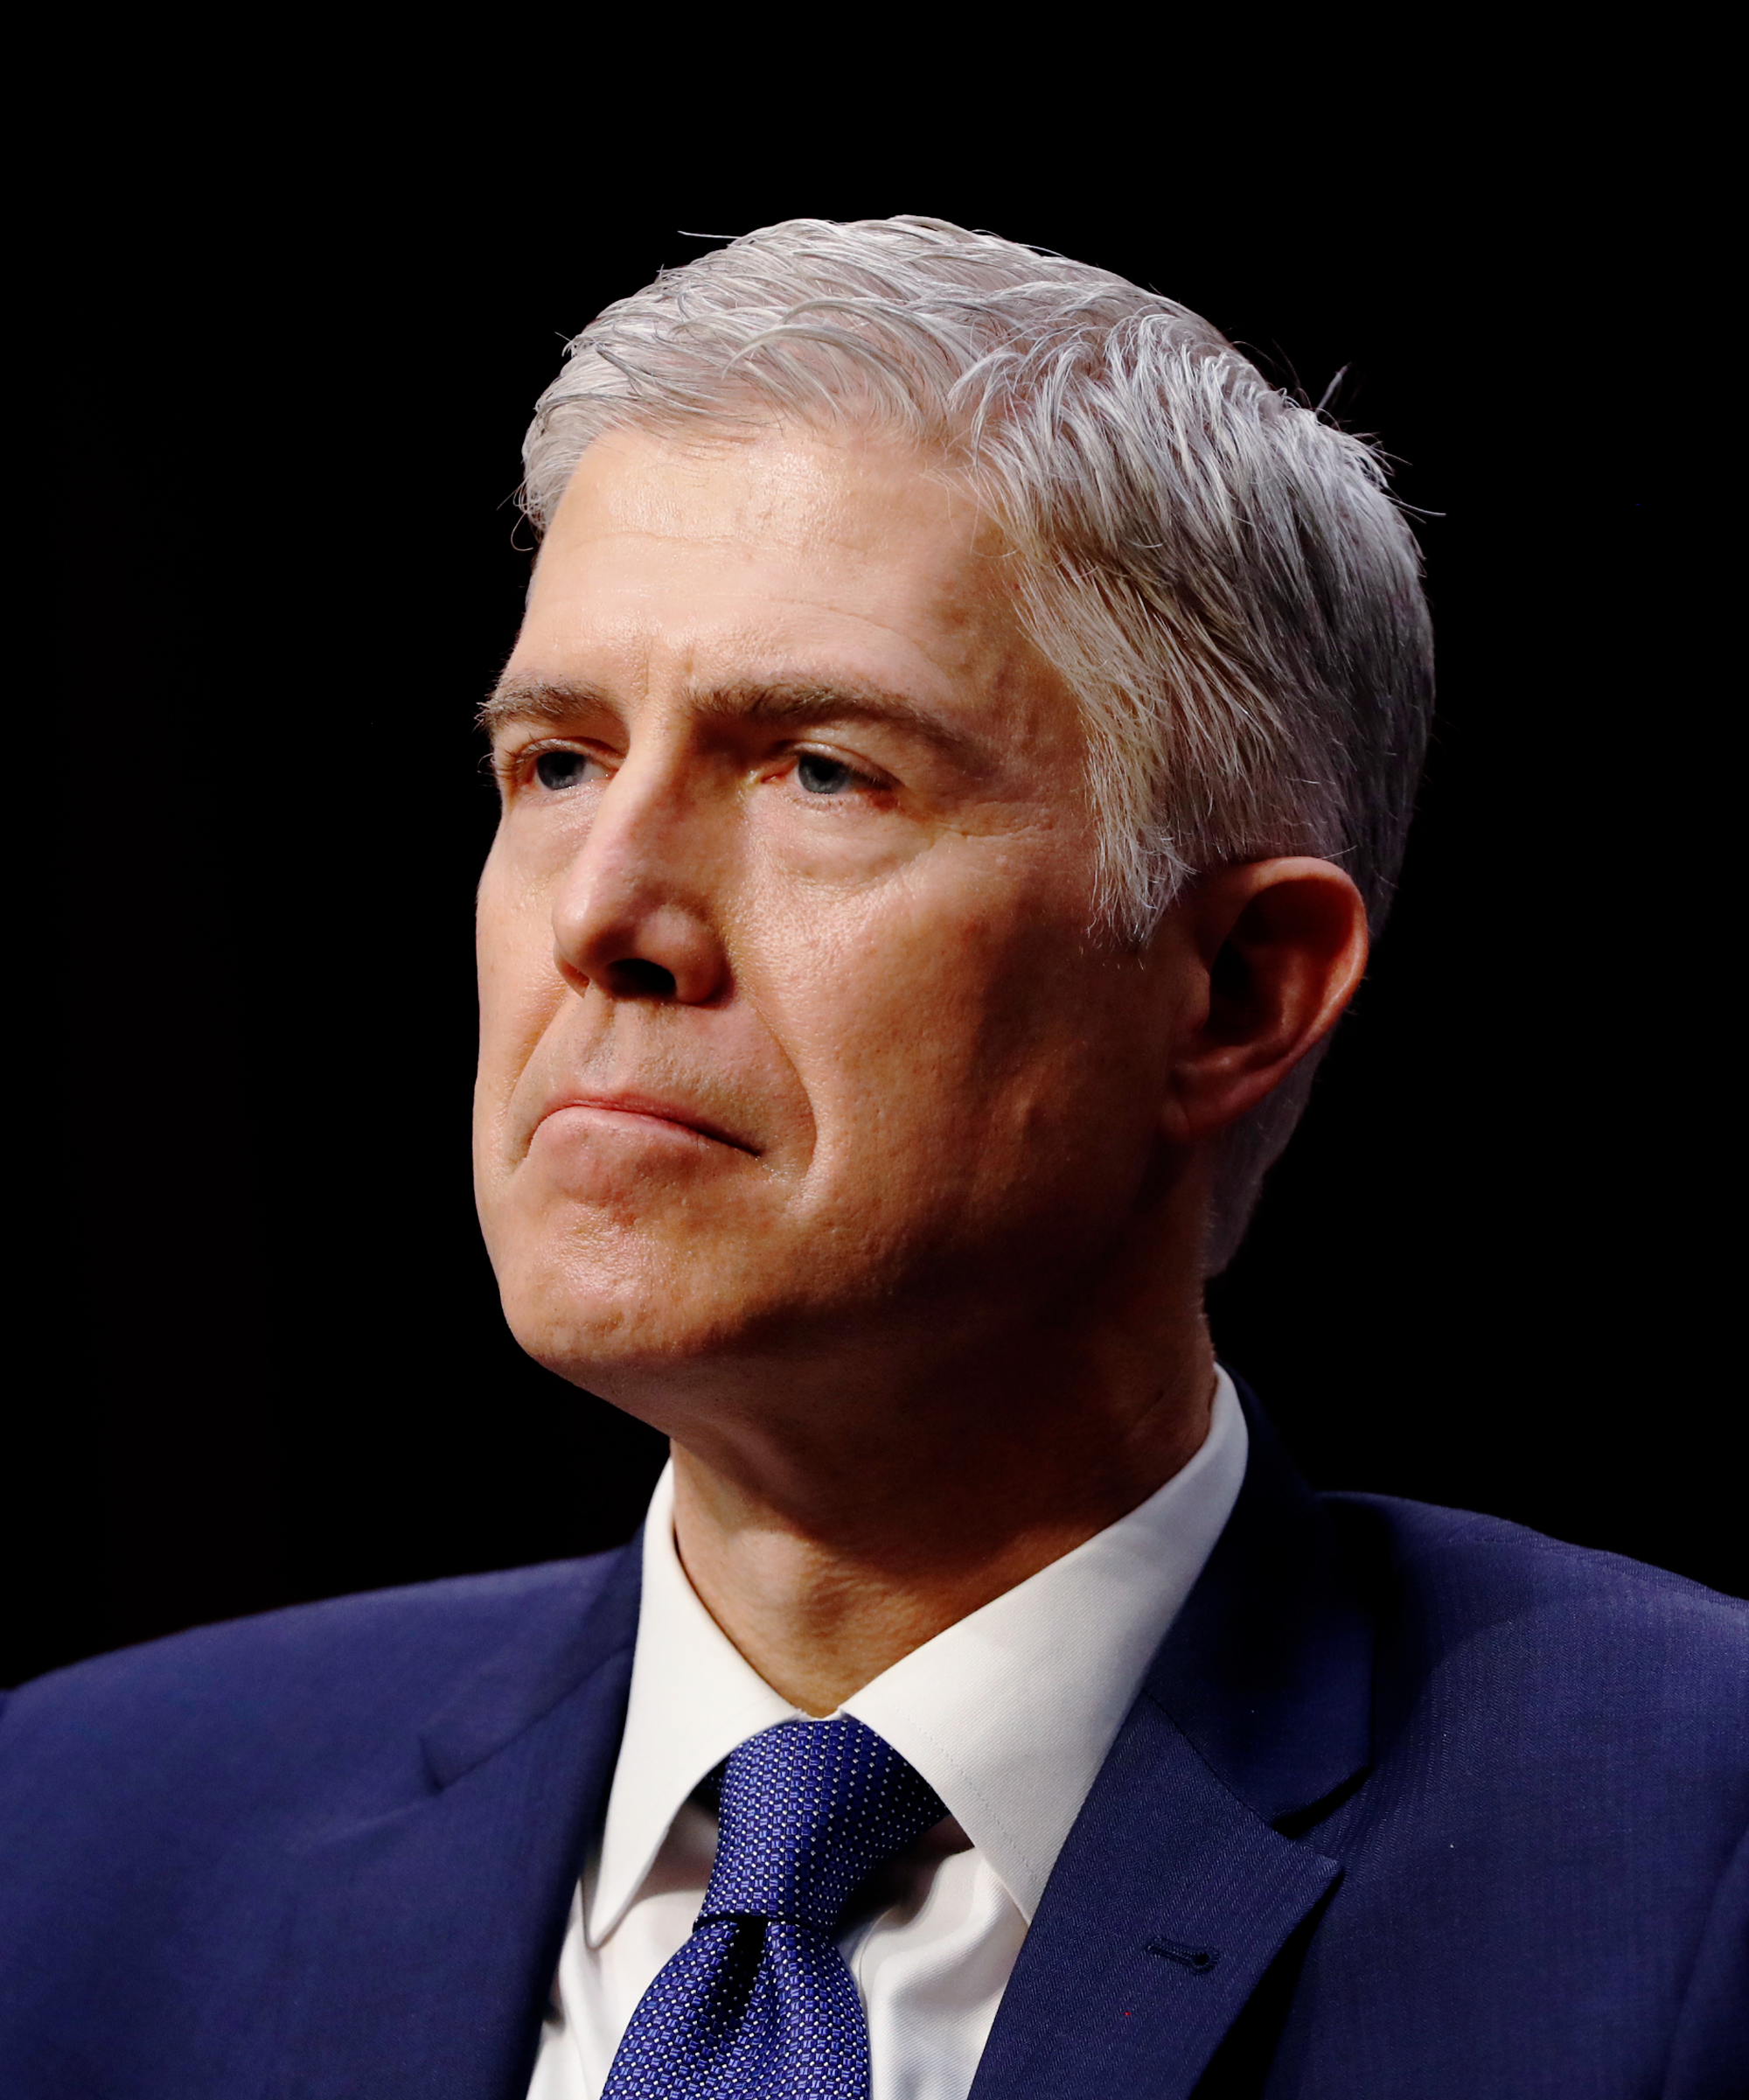 Conservative likely to redefine Supreme Court